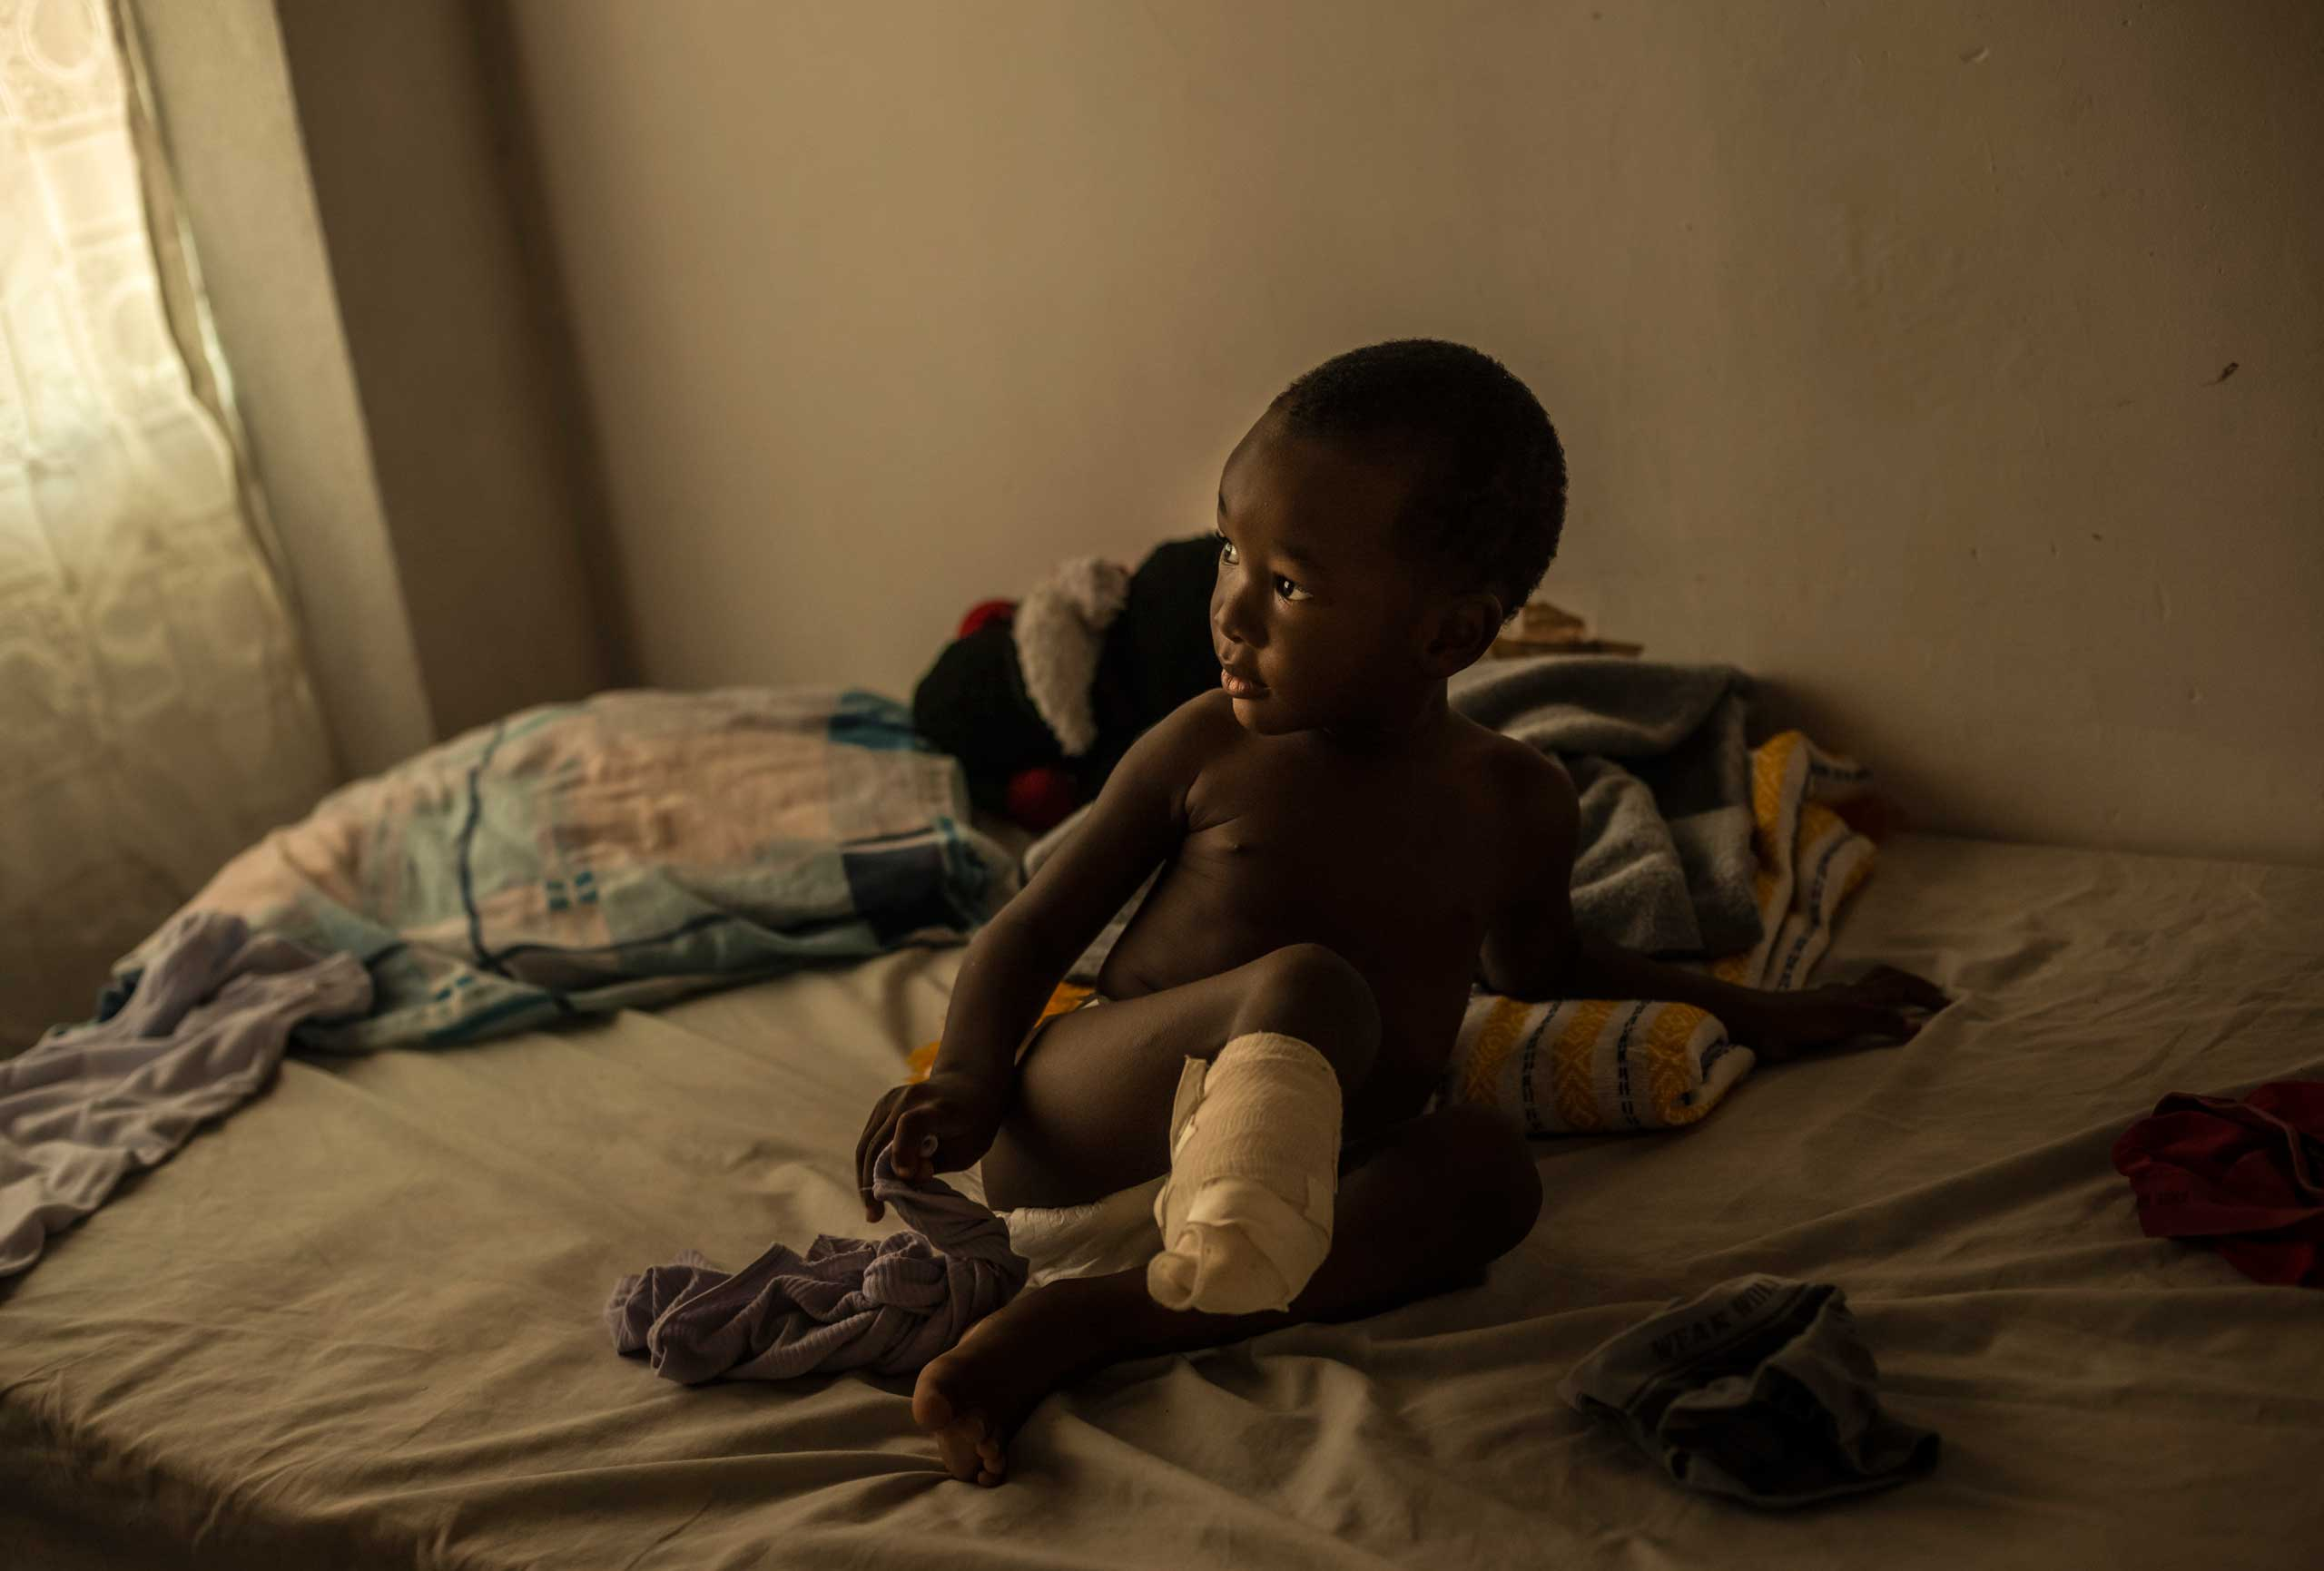 Richard, 2, who had to have his leg partially amputated after falling from a train, waits for a bath from his mother, Emily Bermudez, in Ixtepec, Mexico, July 7, 2014